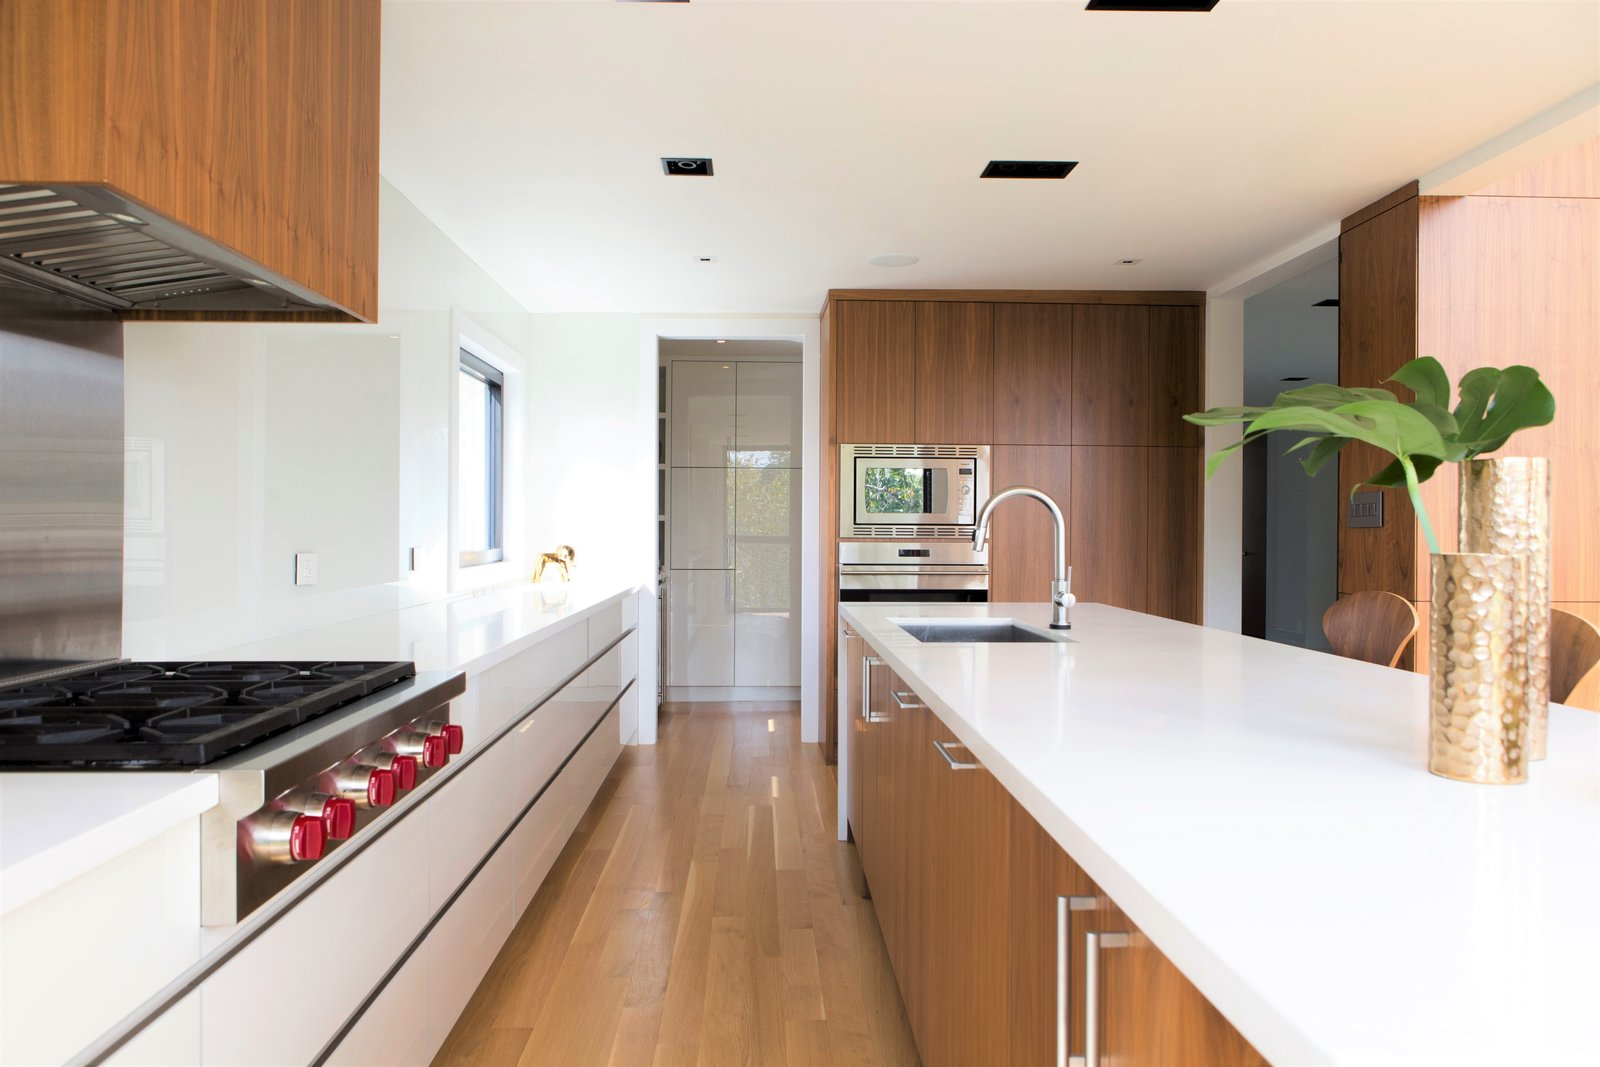 The design of the kitchen is unique in that is has no upper cabinets, and features drawers all throughout the bottom cabinetry – a feature not typically found in residential kitchen designs.  Ravine House by FrankFranco Architects